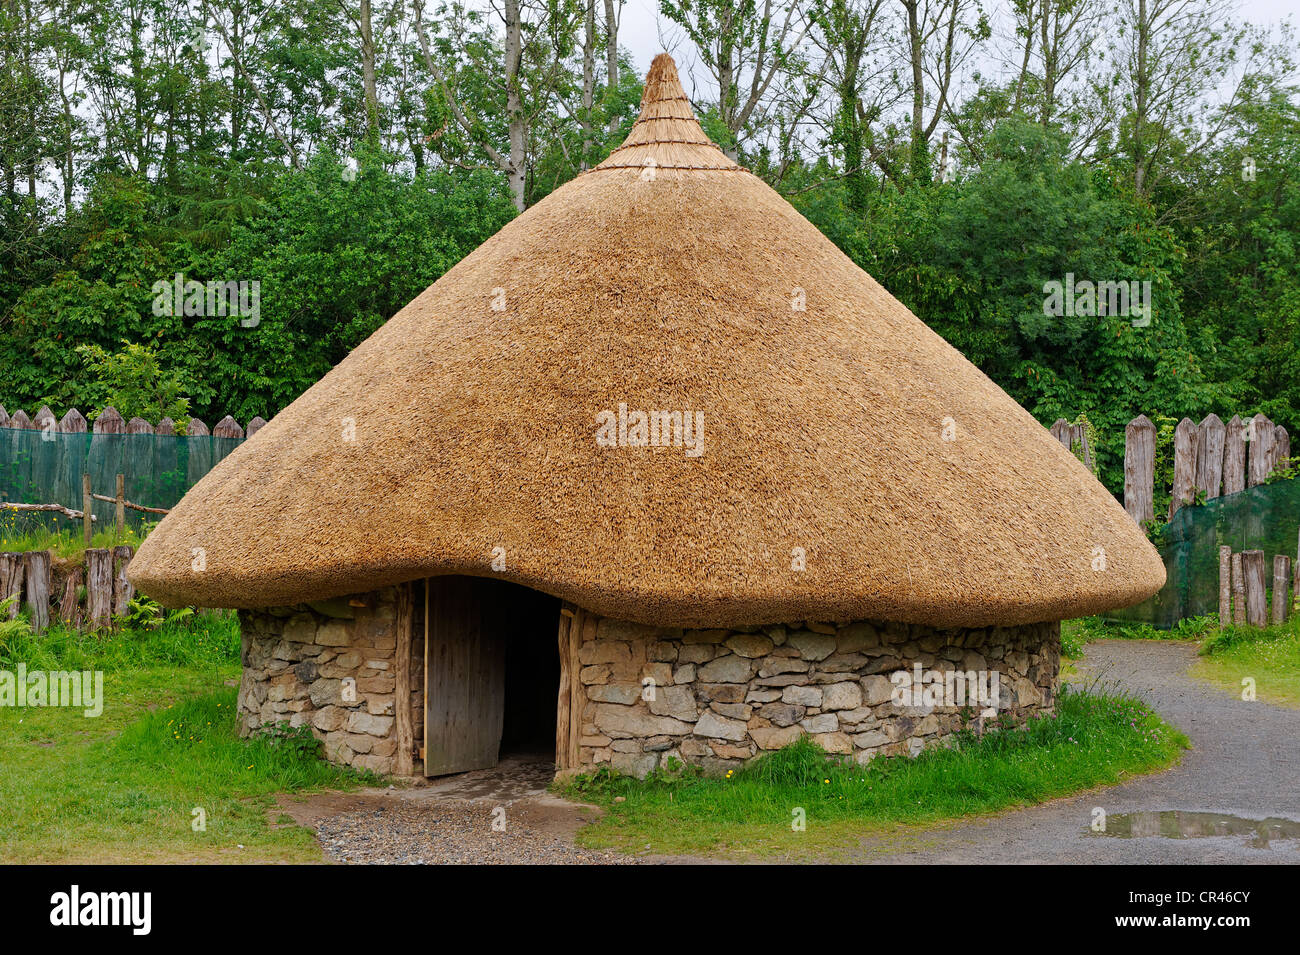 House from the Bronze Age, reconstructed, Irish National Heritage Park, Wexford, County Wexford, Ireland, Europe - Stock Image